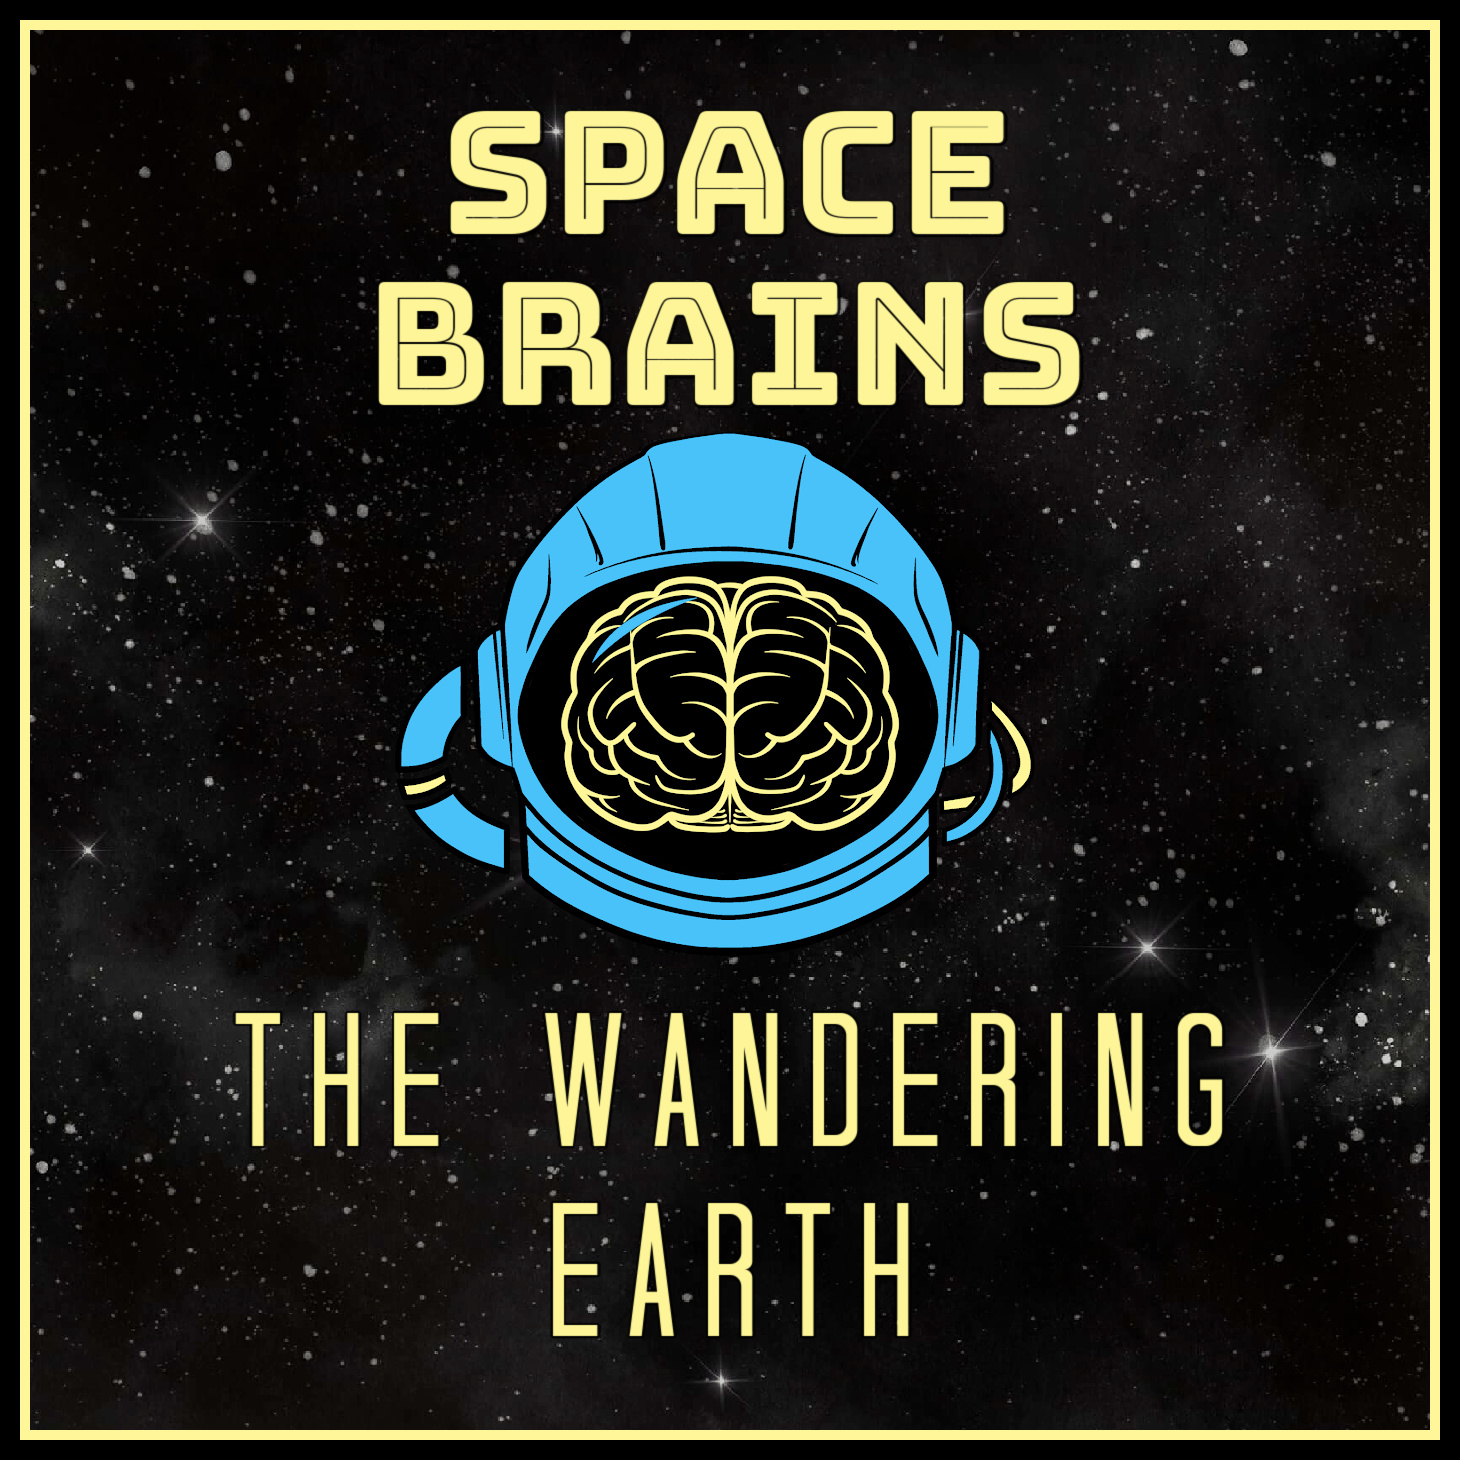 Space Brains - 16 - The Wandering Earth